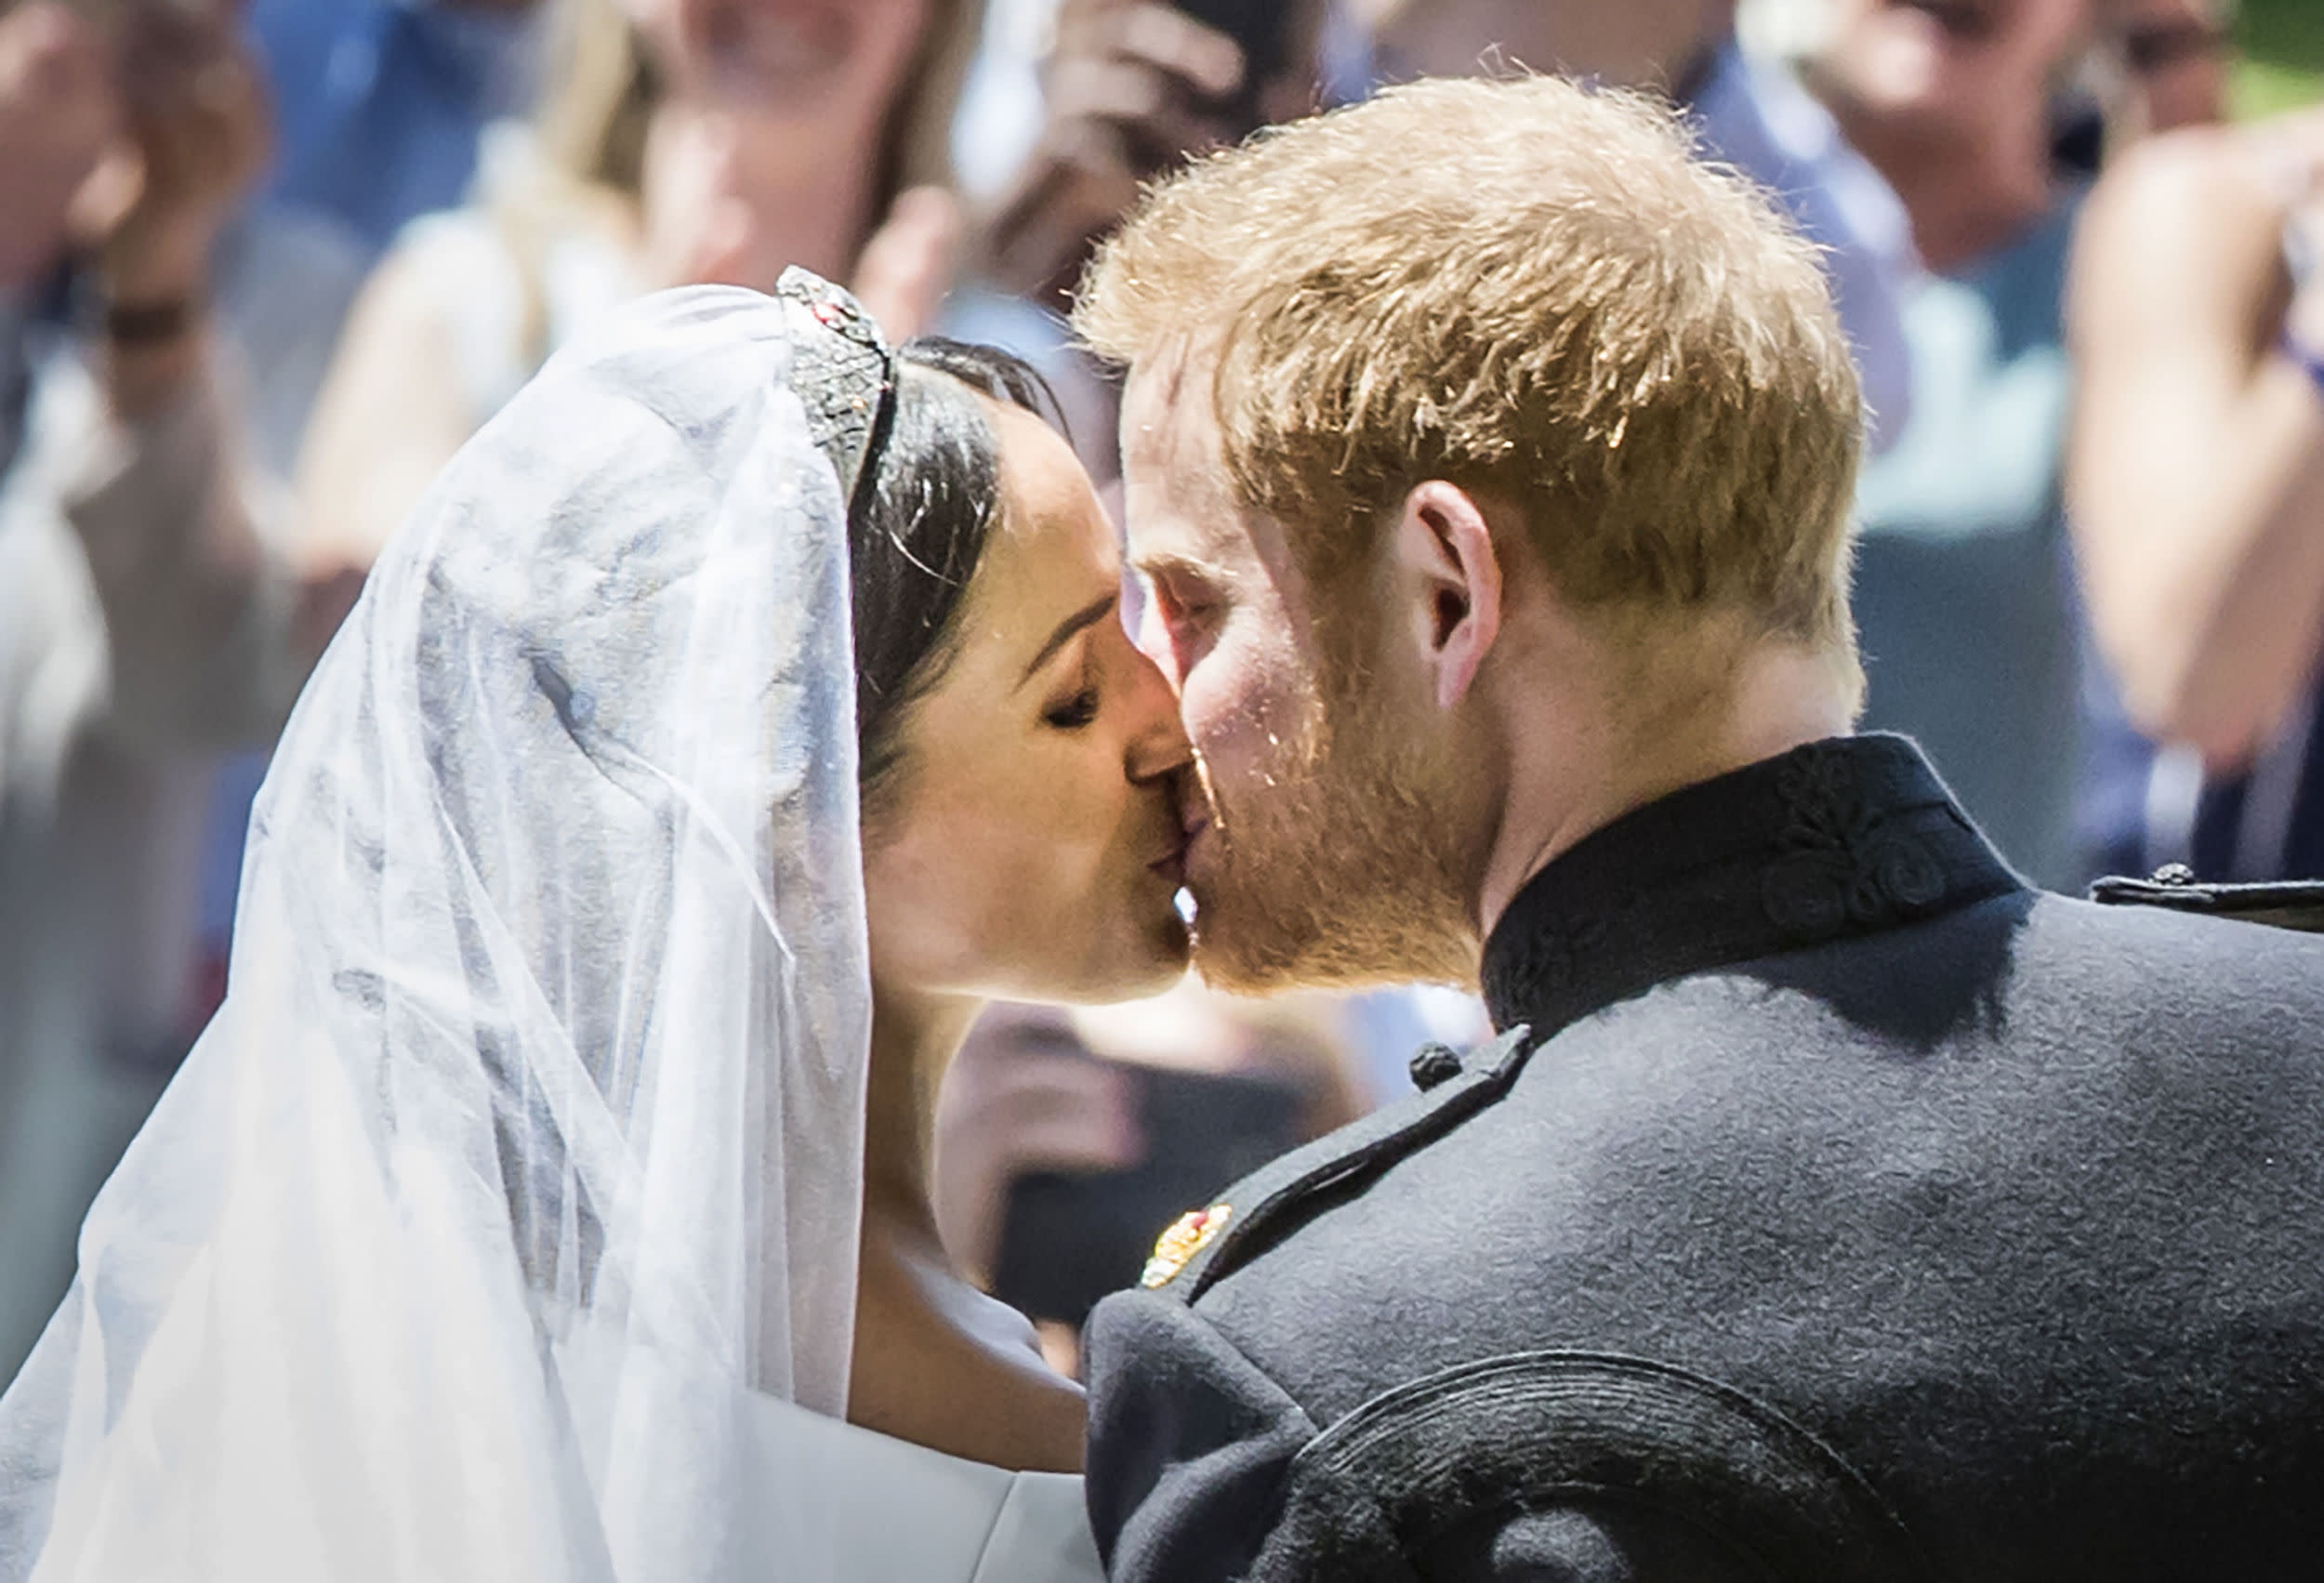 TOPSHOT - Britain's Prince Harry, Duke of Sussex kisses his wife Meghan, Duchess of Sussex as they leave from the West Door of St George's Chapel, Windsor Castle, in Windsor, on May 19, 2018 after their wedding ceremony. (Photo by Danny Lawson / POOL / AFP)        (Photo credit should read DANNY LAWSON/AFP/Getty Images)